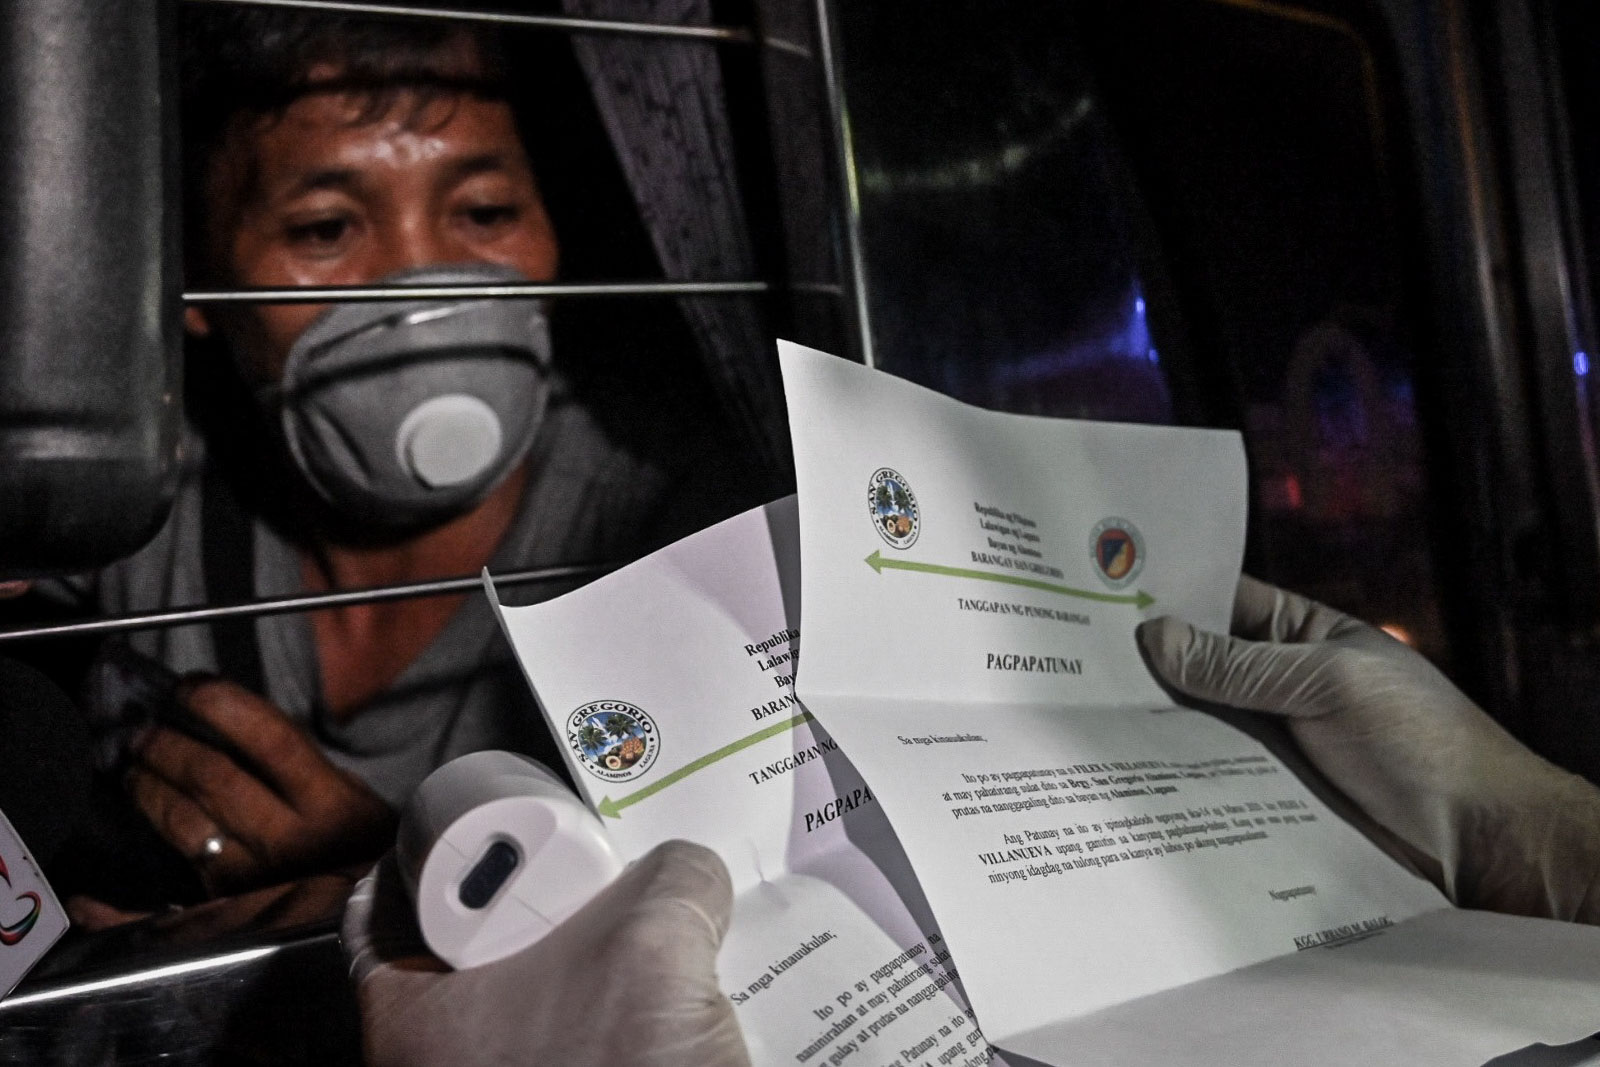 A DOH personnel checks body temperatures of motorists as policemen inspect their identification at a checkpoint along the boundary of Muntinlupa and San Pedro, Laguna. Photo by Alecs Ongcal/Rappler